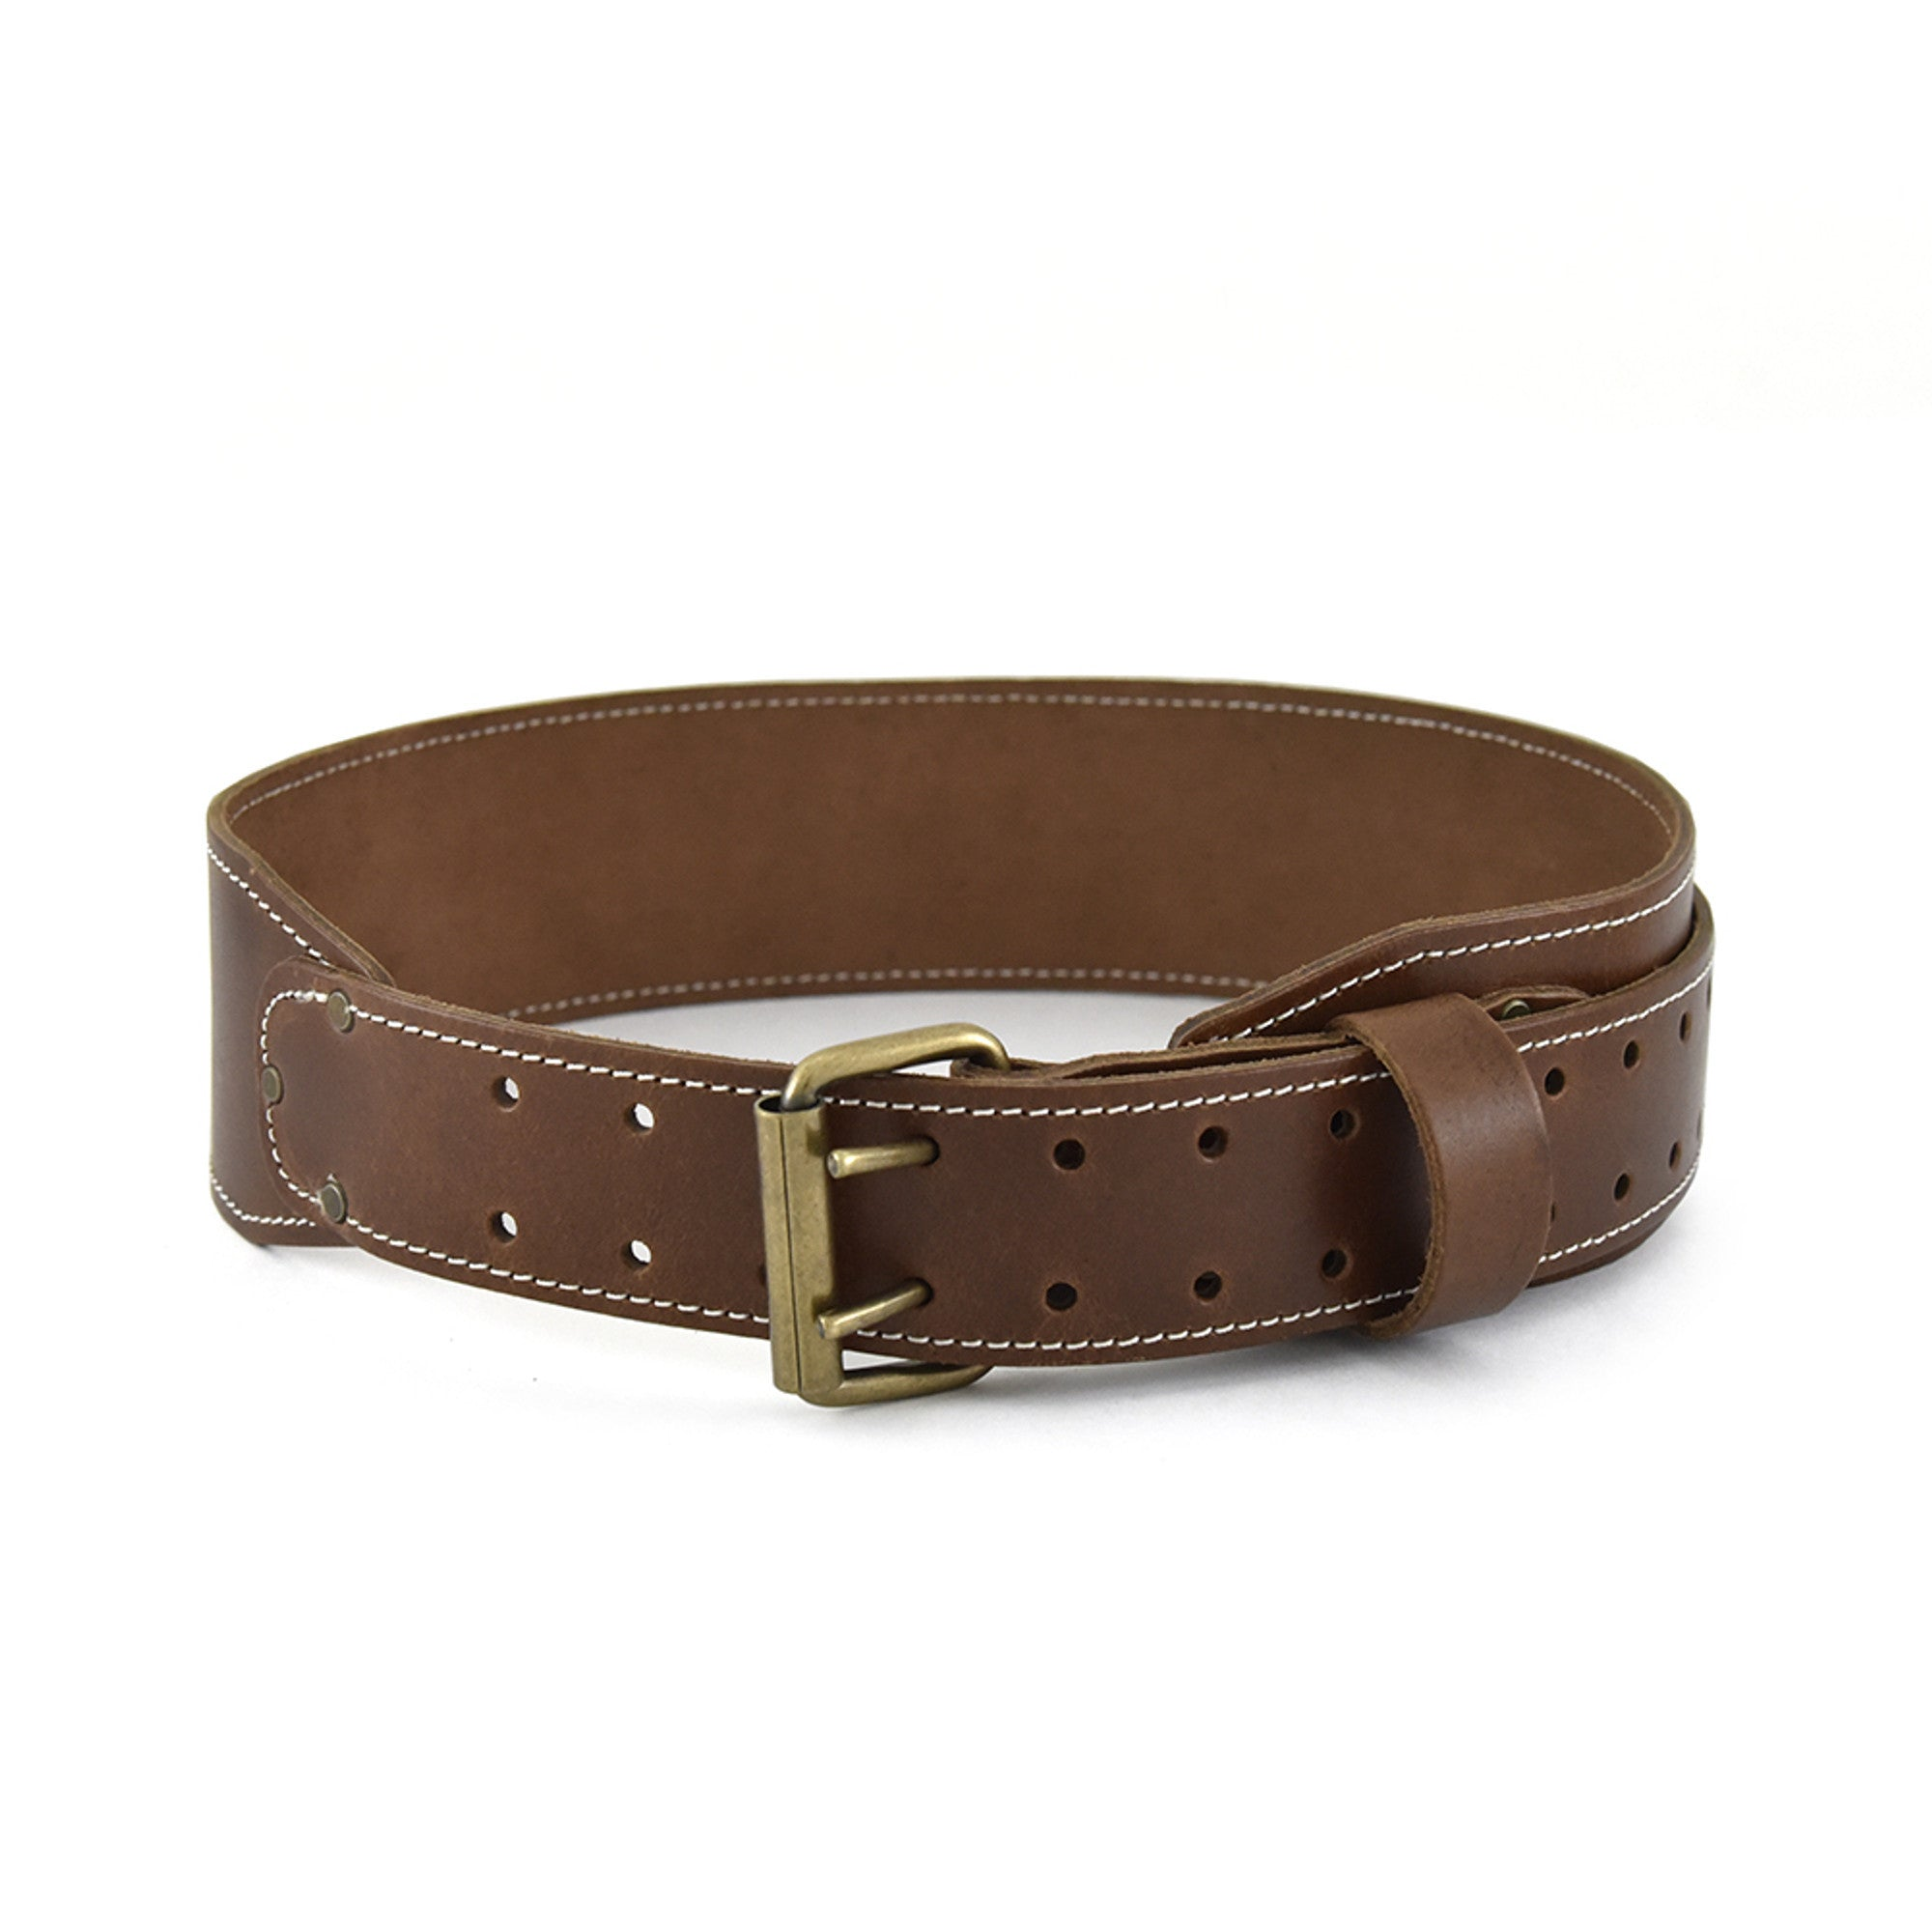 Style n Craft 98437 - 3 Inch Wide Tapered Work Belt in Heavy Top Grain Leather in Dark Tan Color